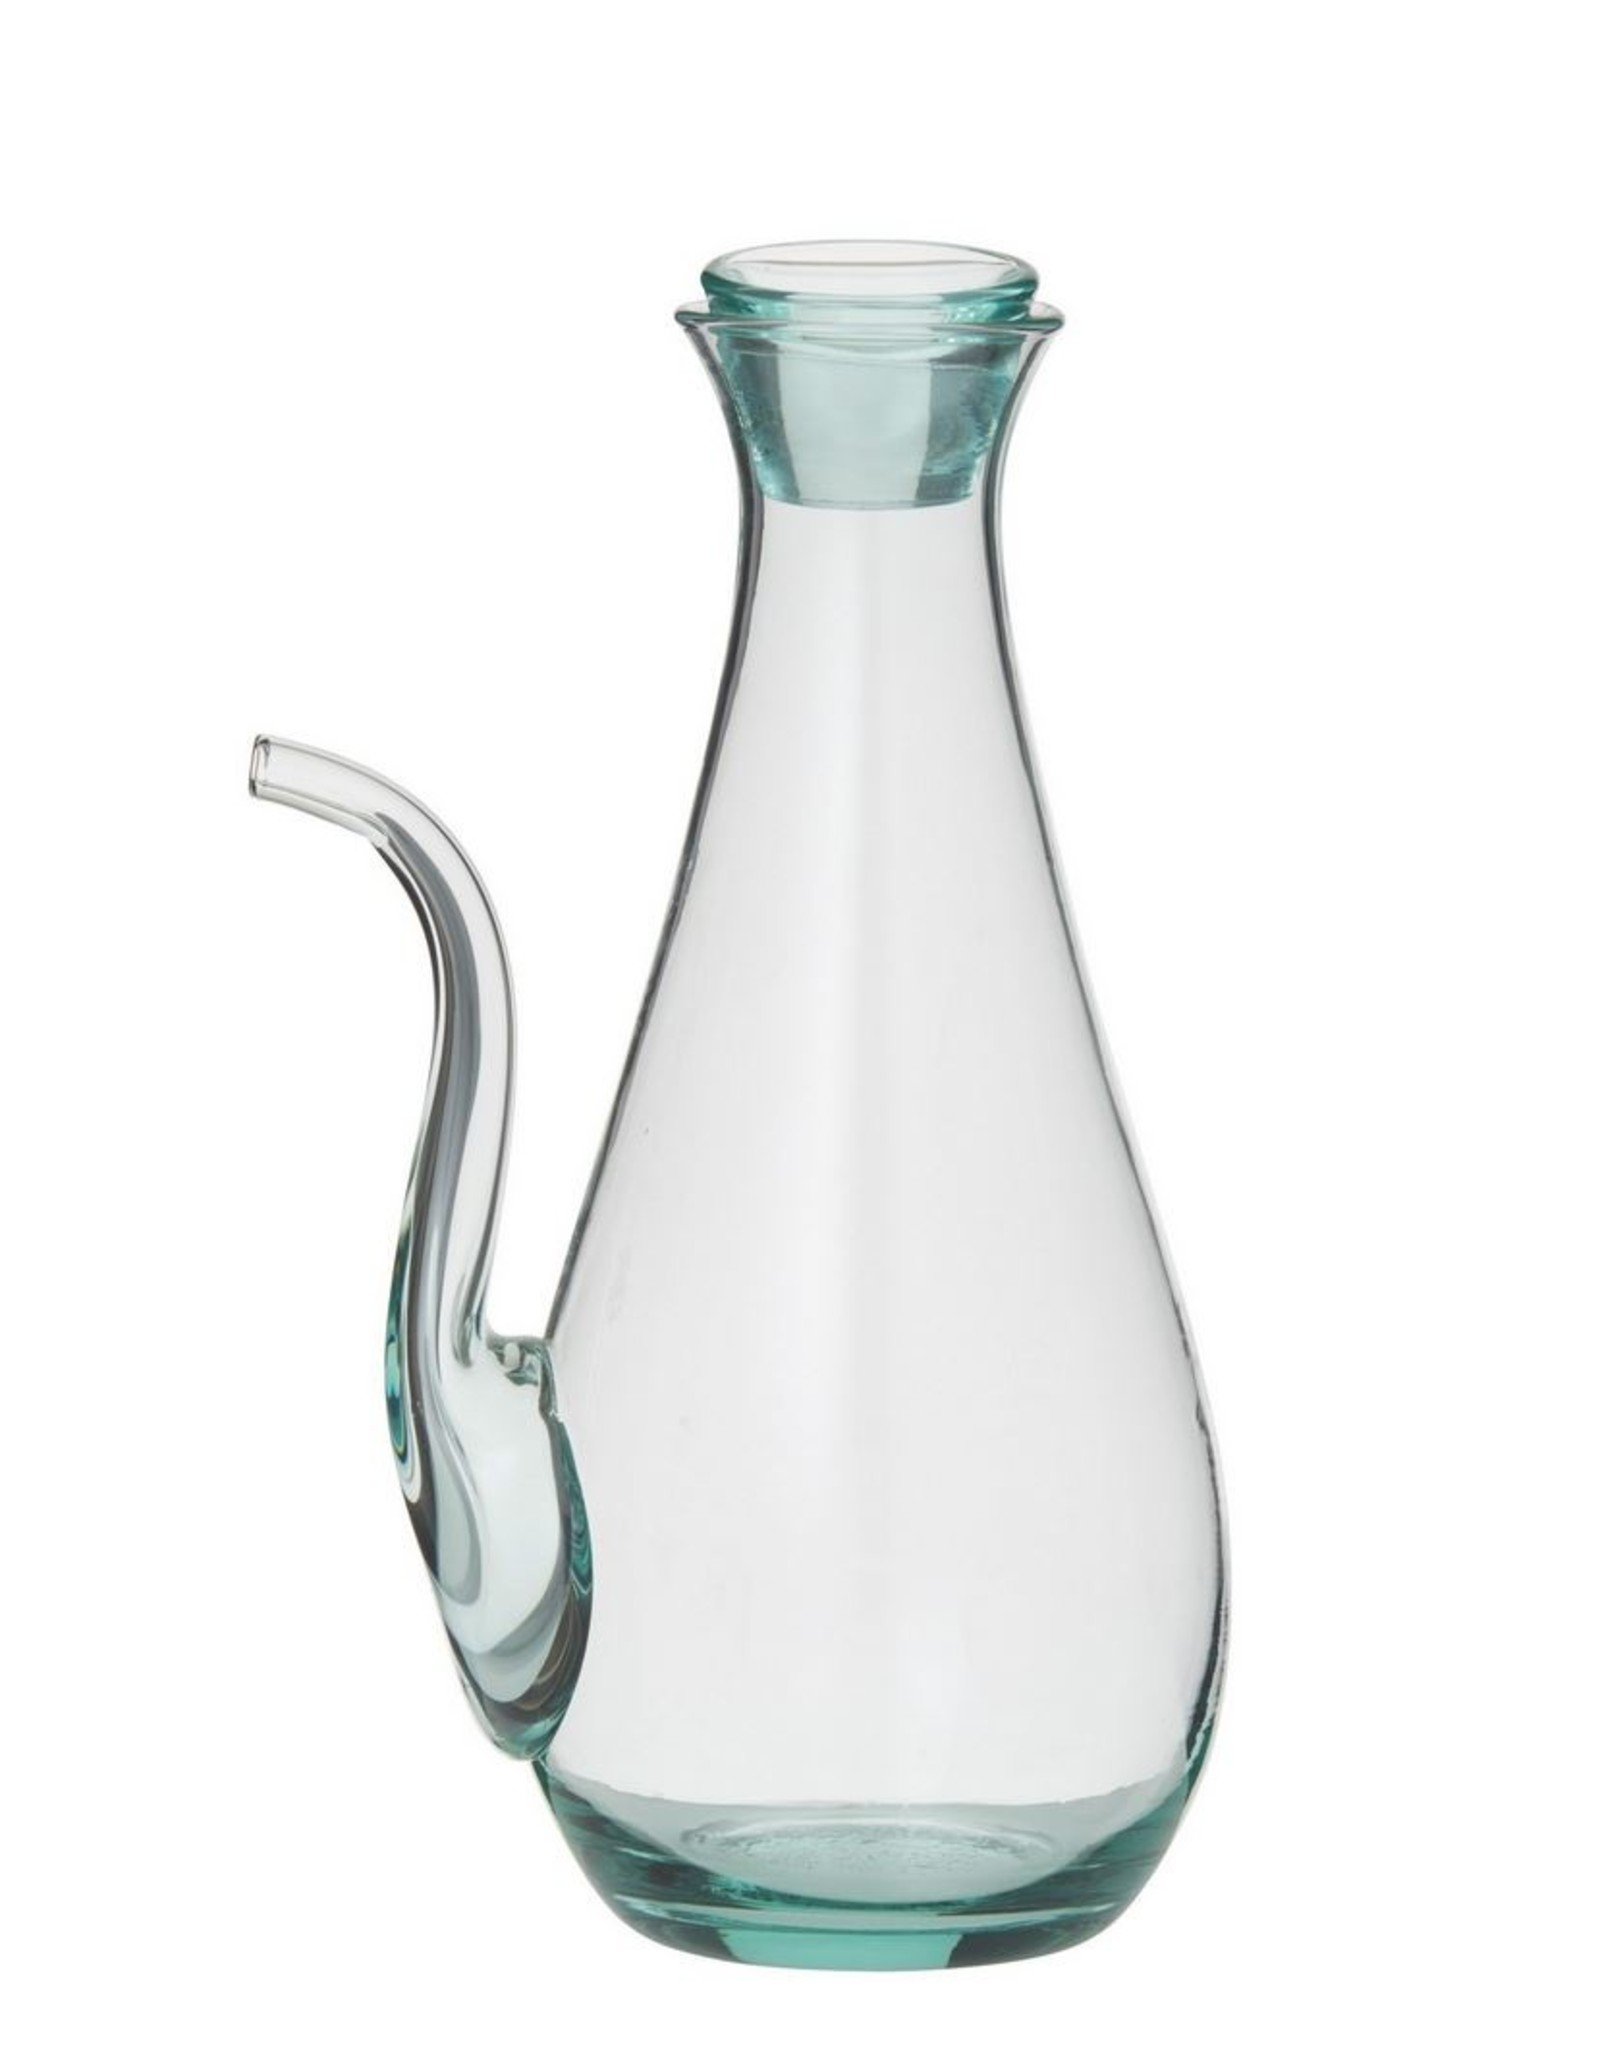 Eco Glass Claico Decanter with Glass Stopper